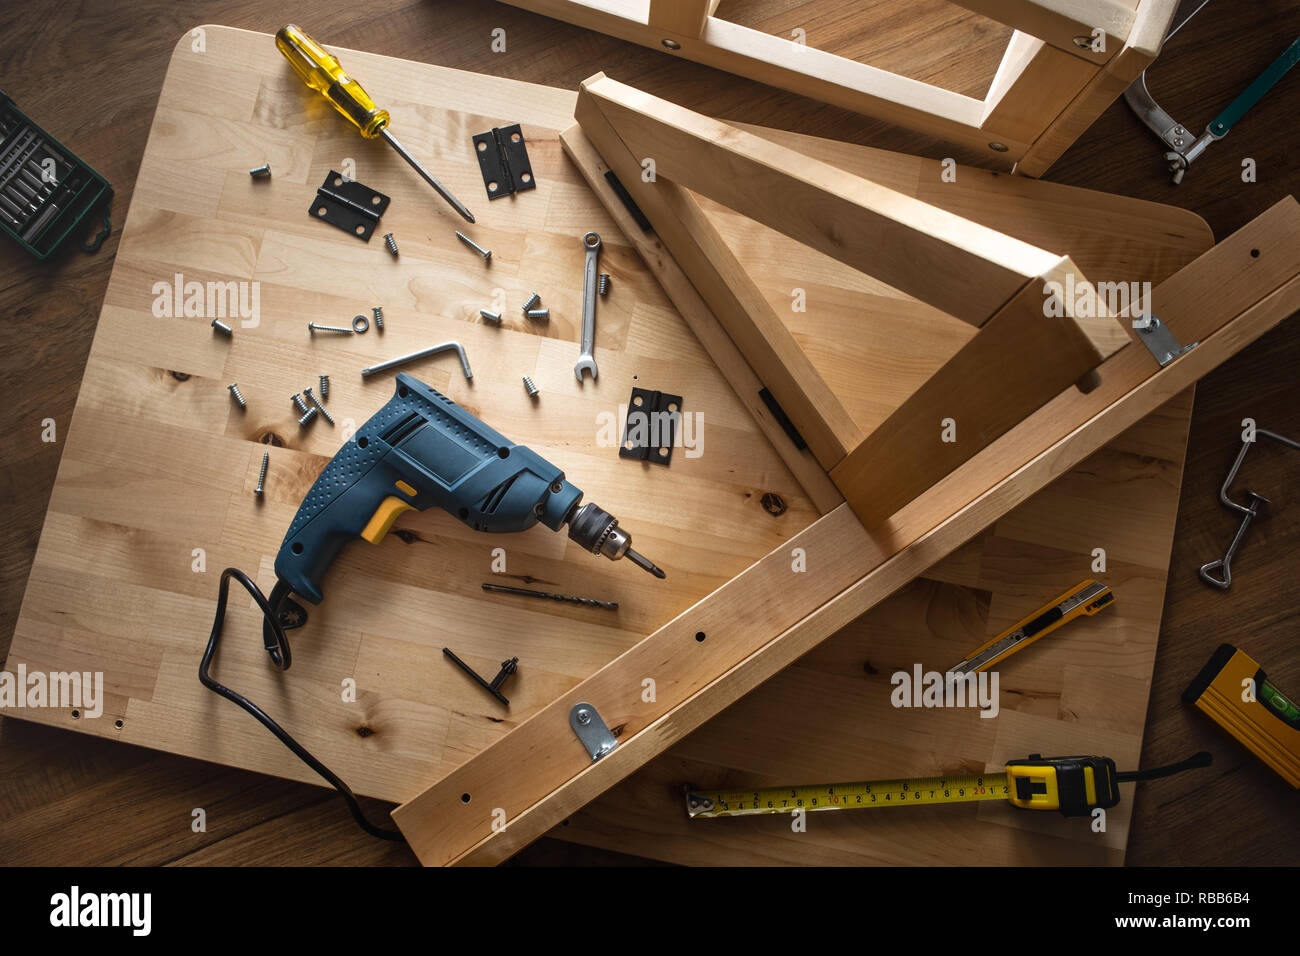 Top view of drill tool and another equipment on wood table furniture.assembly, improvement or repairing home interior concepts ideas - Stock Image